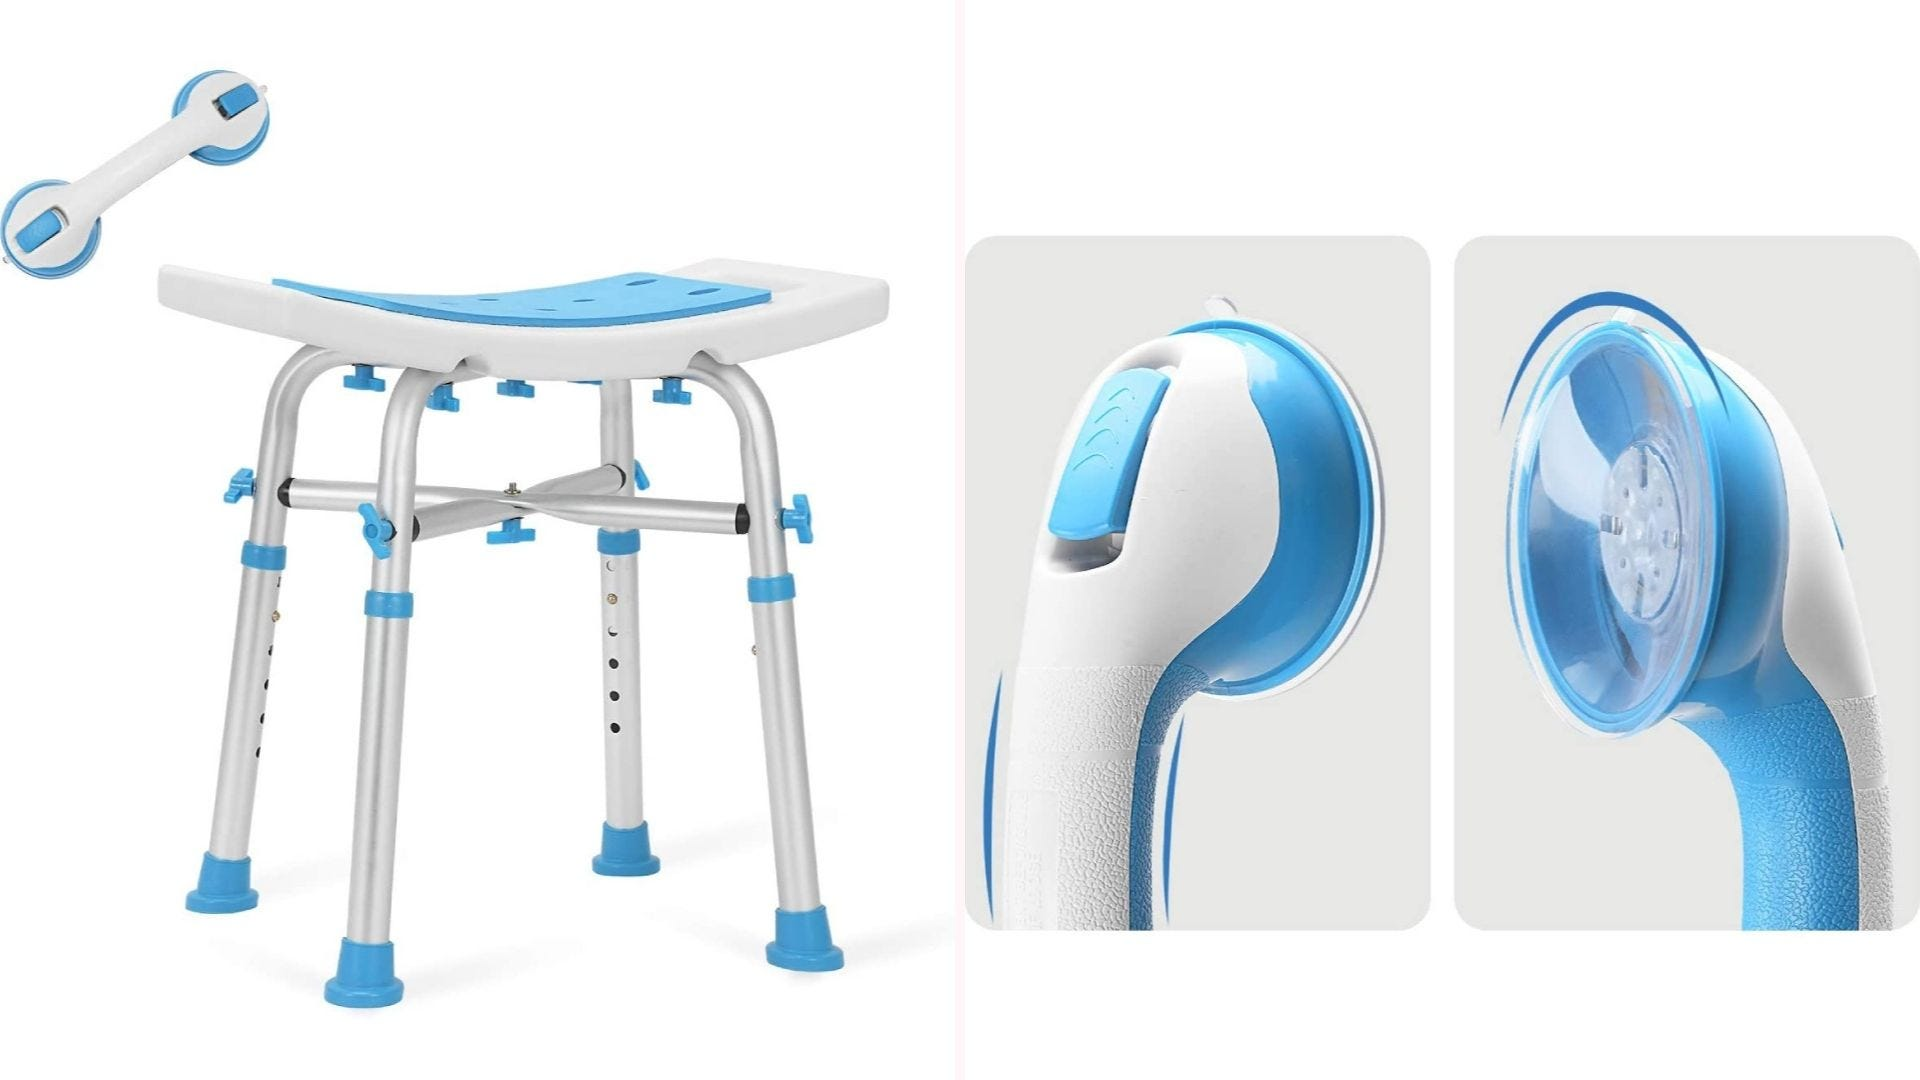 On the left, a white and blue shower stool constructed from plastic and aluminum sits at centerframe, while a white and blue grab bar is off to its left. On the right, a close up of the of the shower bar, which showcases the suction cup sticking-power of its design.